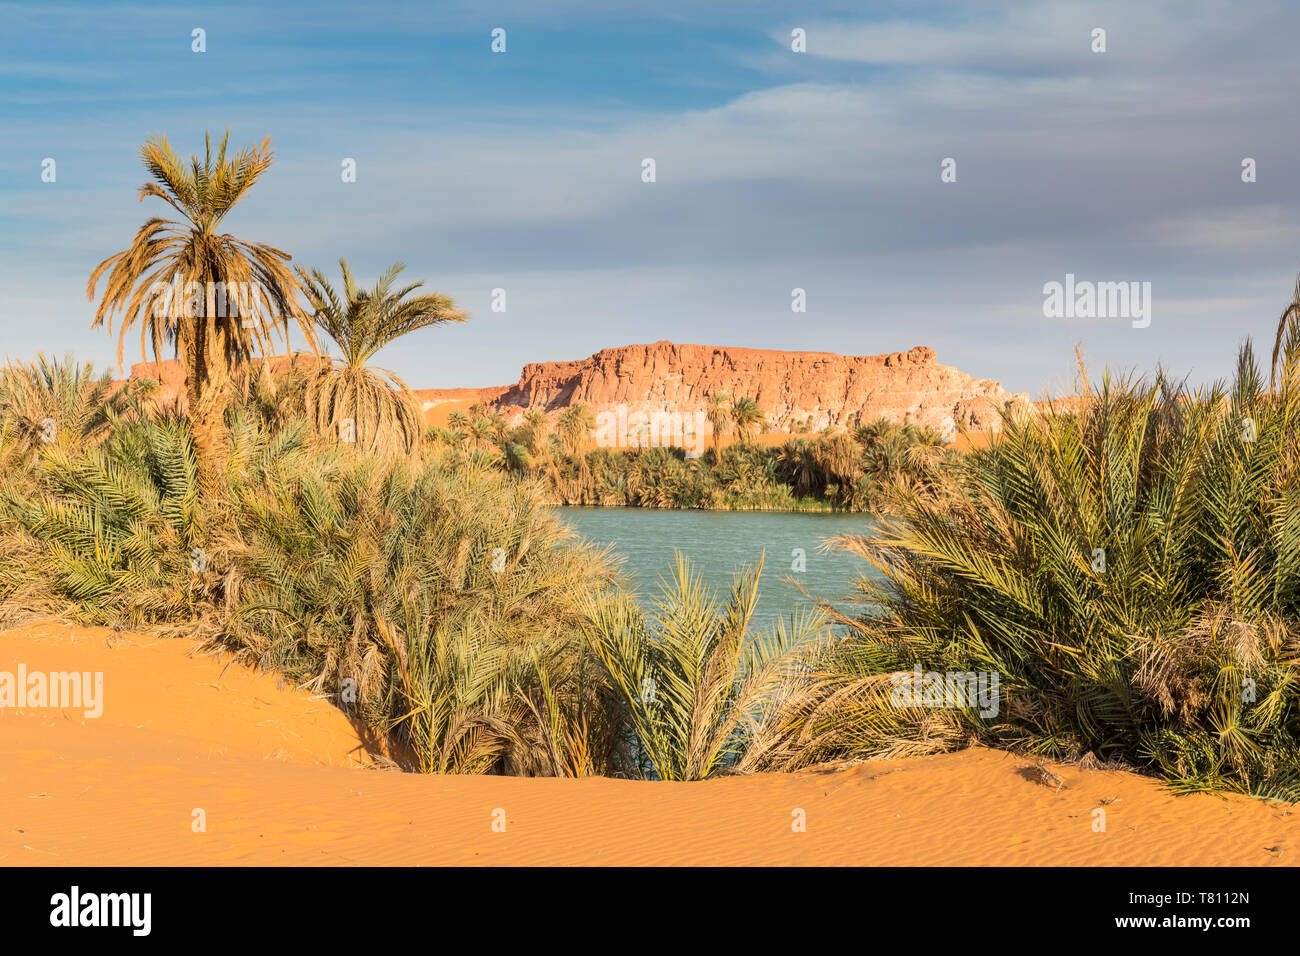 The shore of Ounianga Kebir part of the Ounianga lakes, UNESCO World Heritage Site, northern Chad, Africa - Stock Image